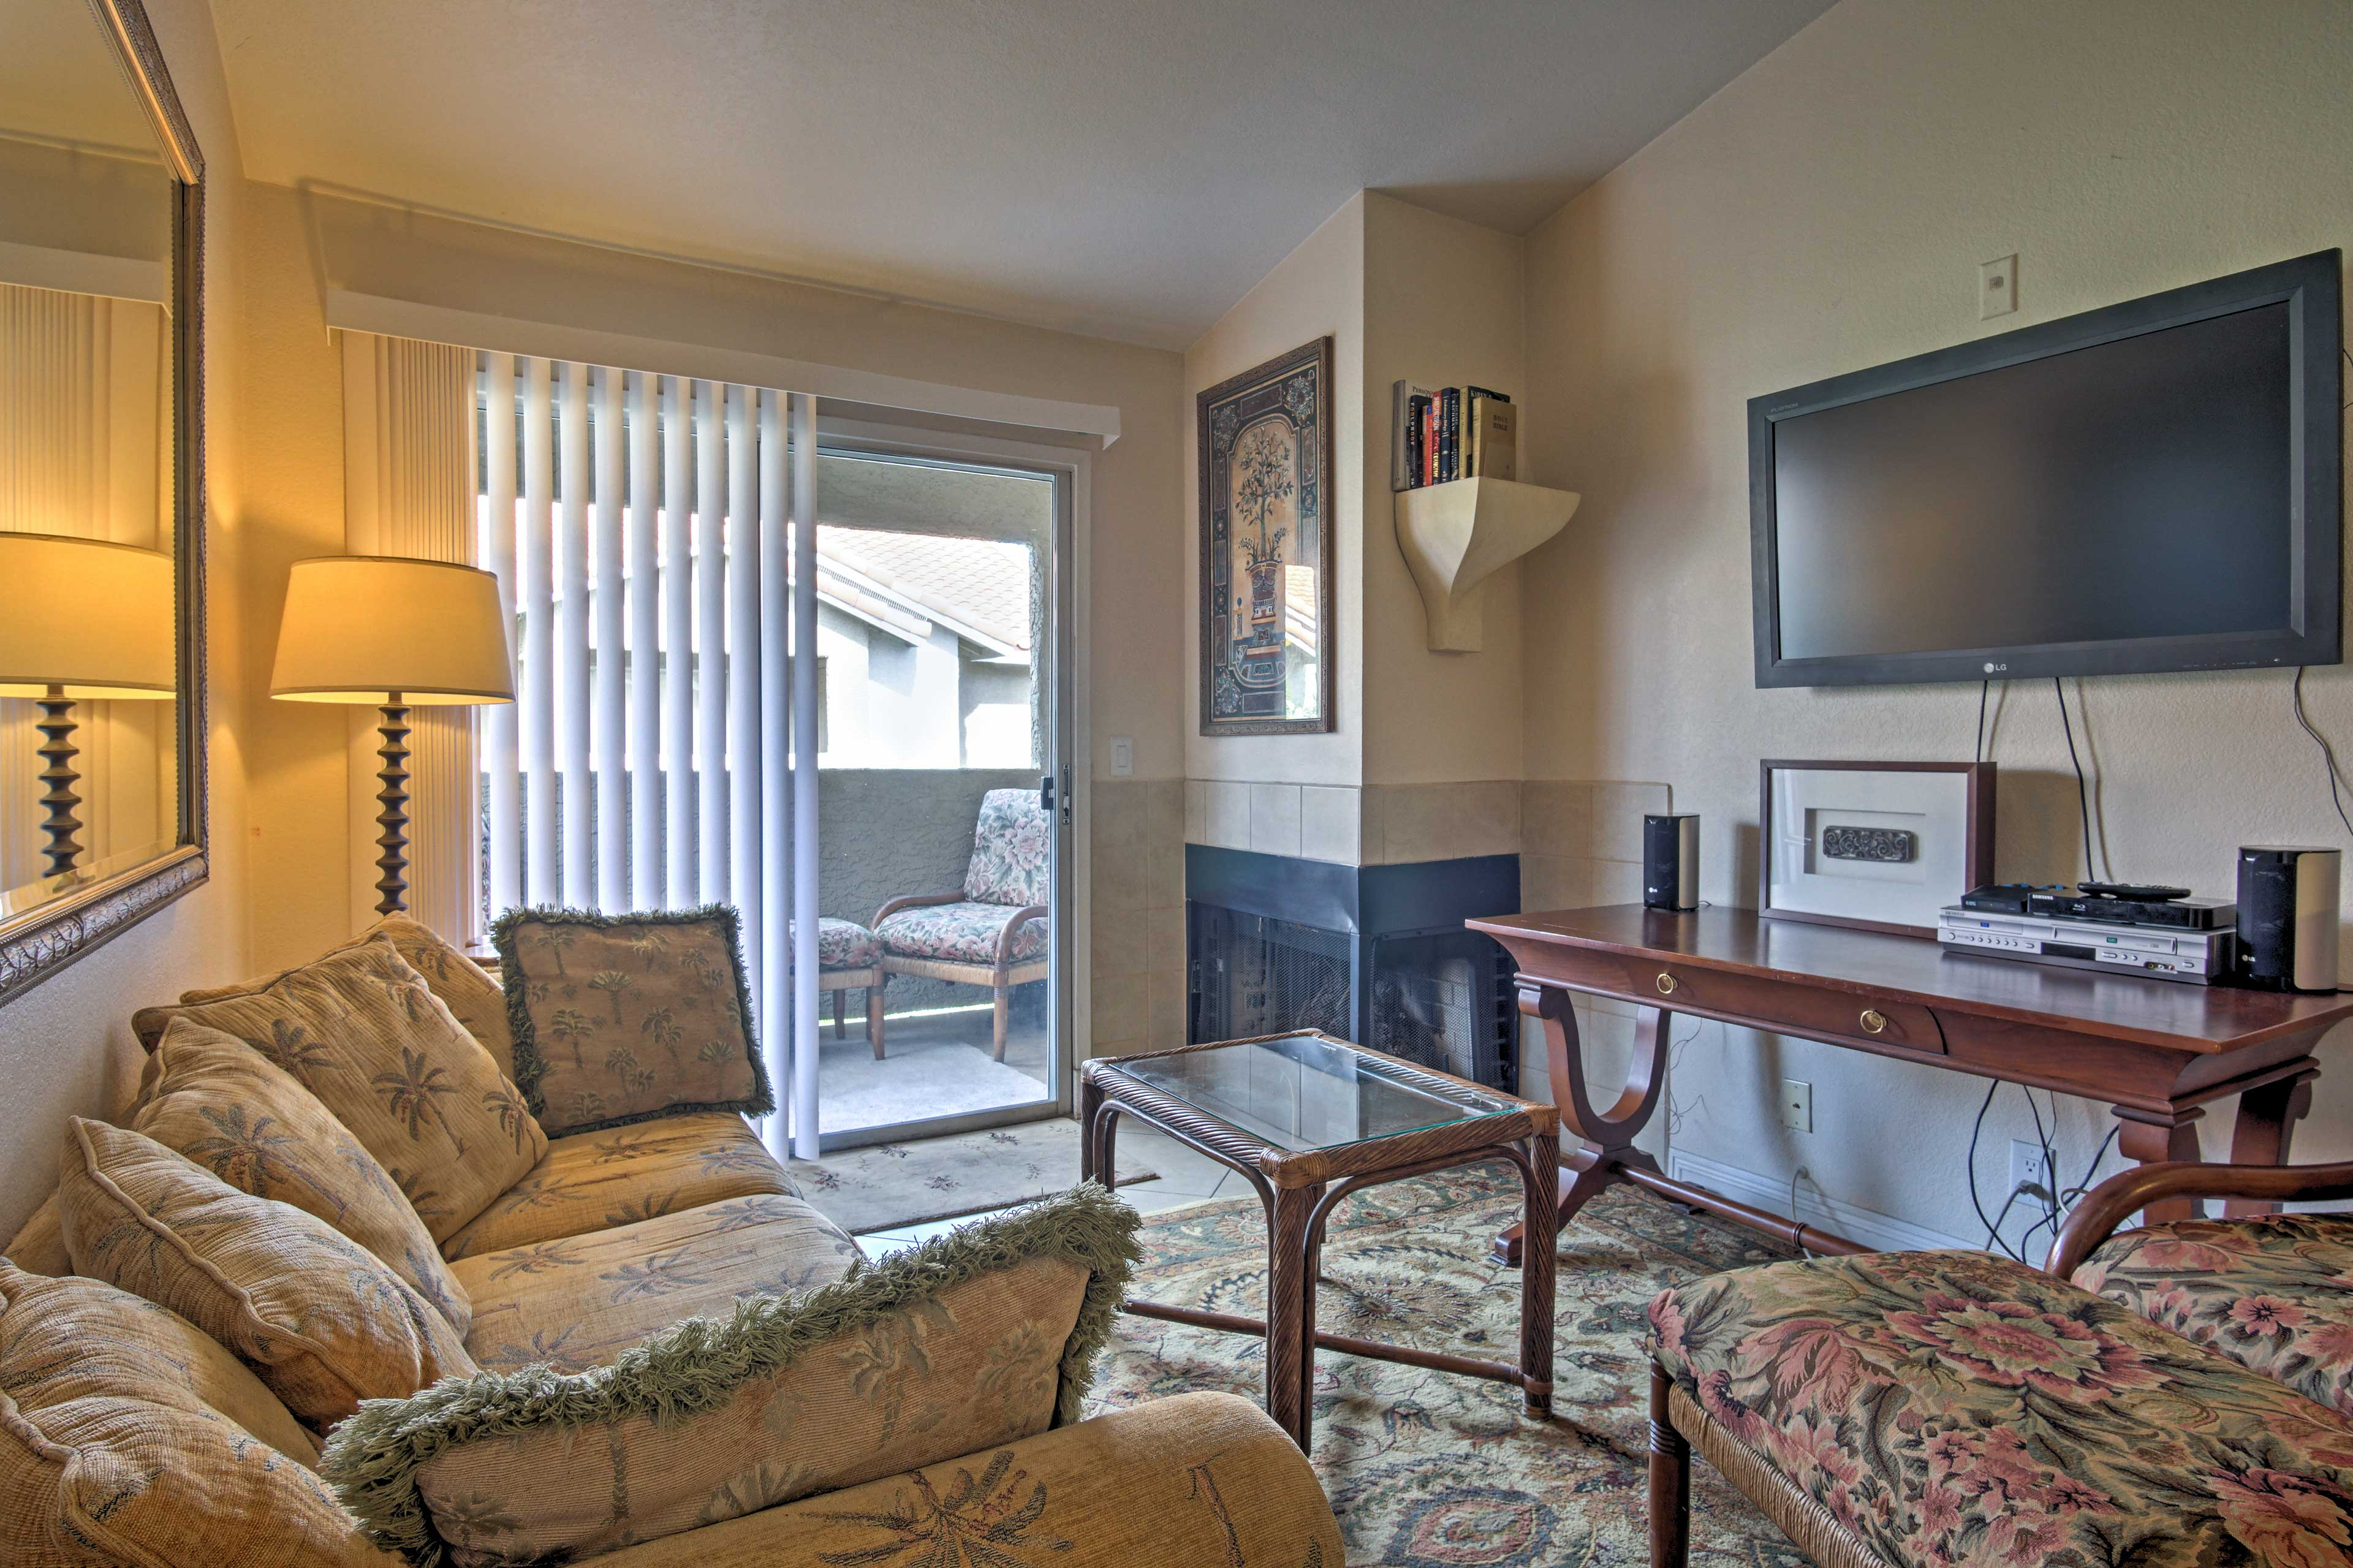 Warm up next to the wood-burning fireplace in the warm and inviting living room.